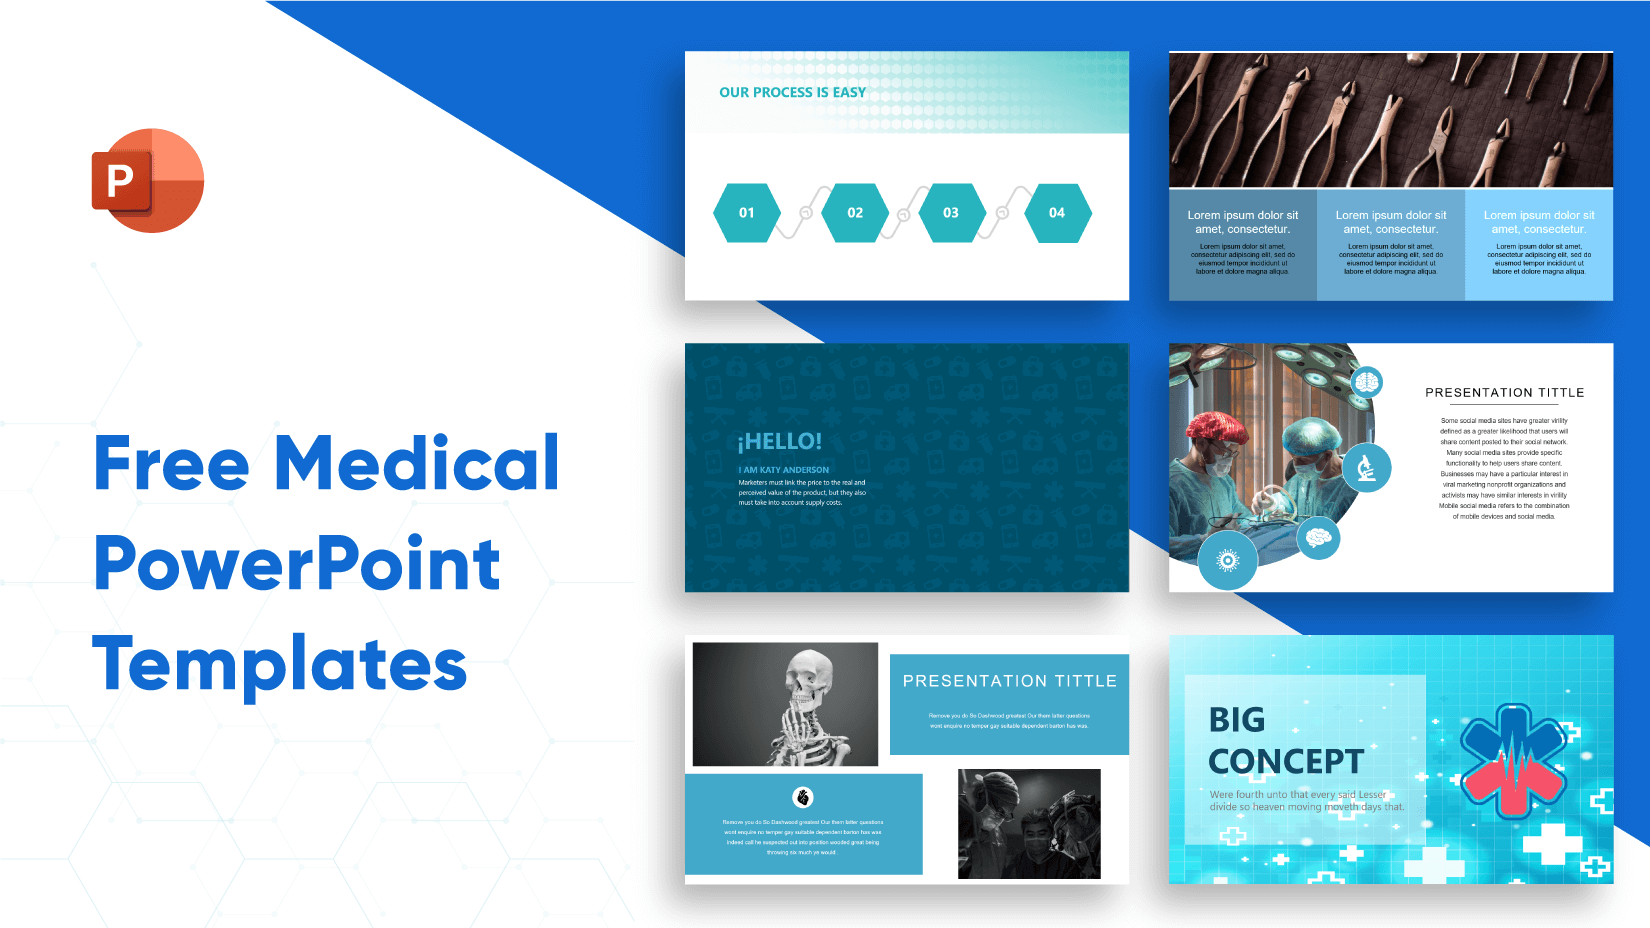 27 Free Medical PowerPoint Templates